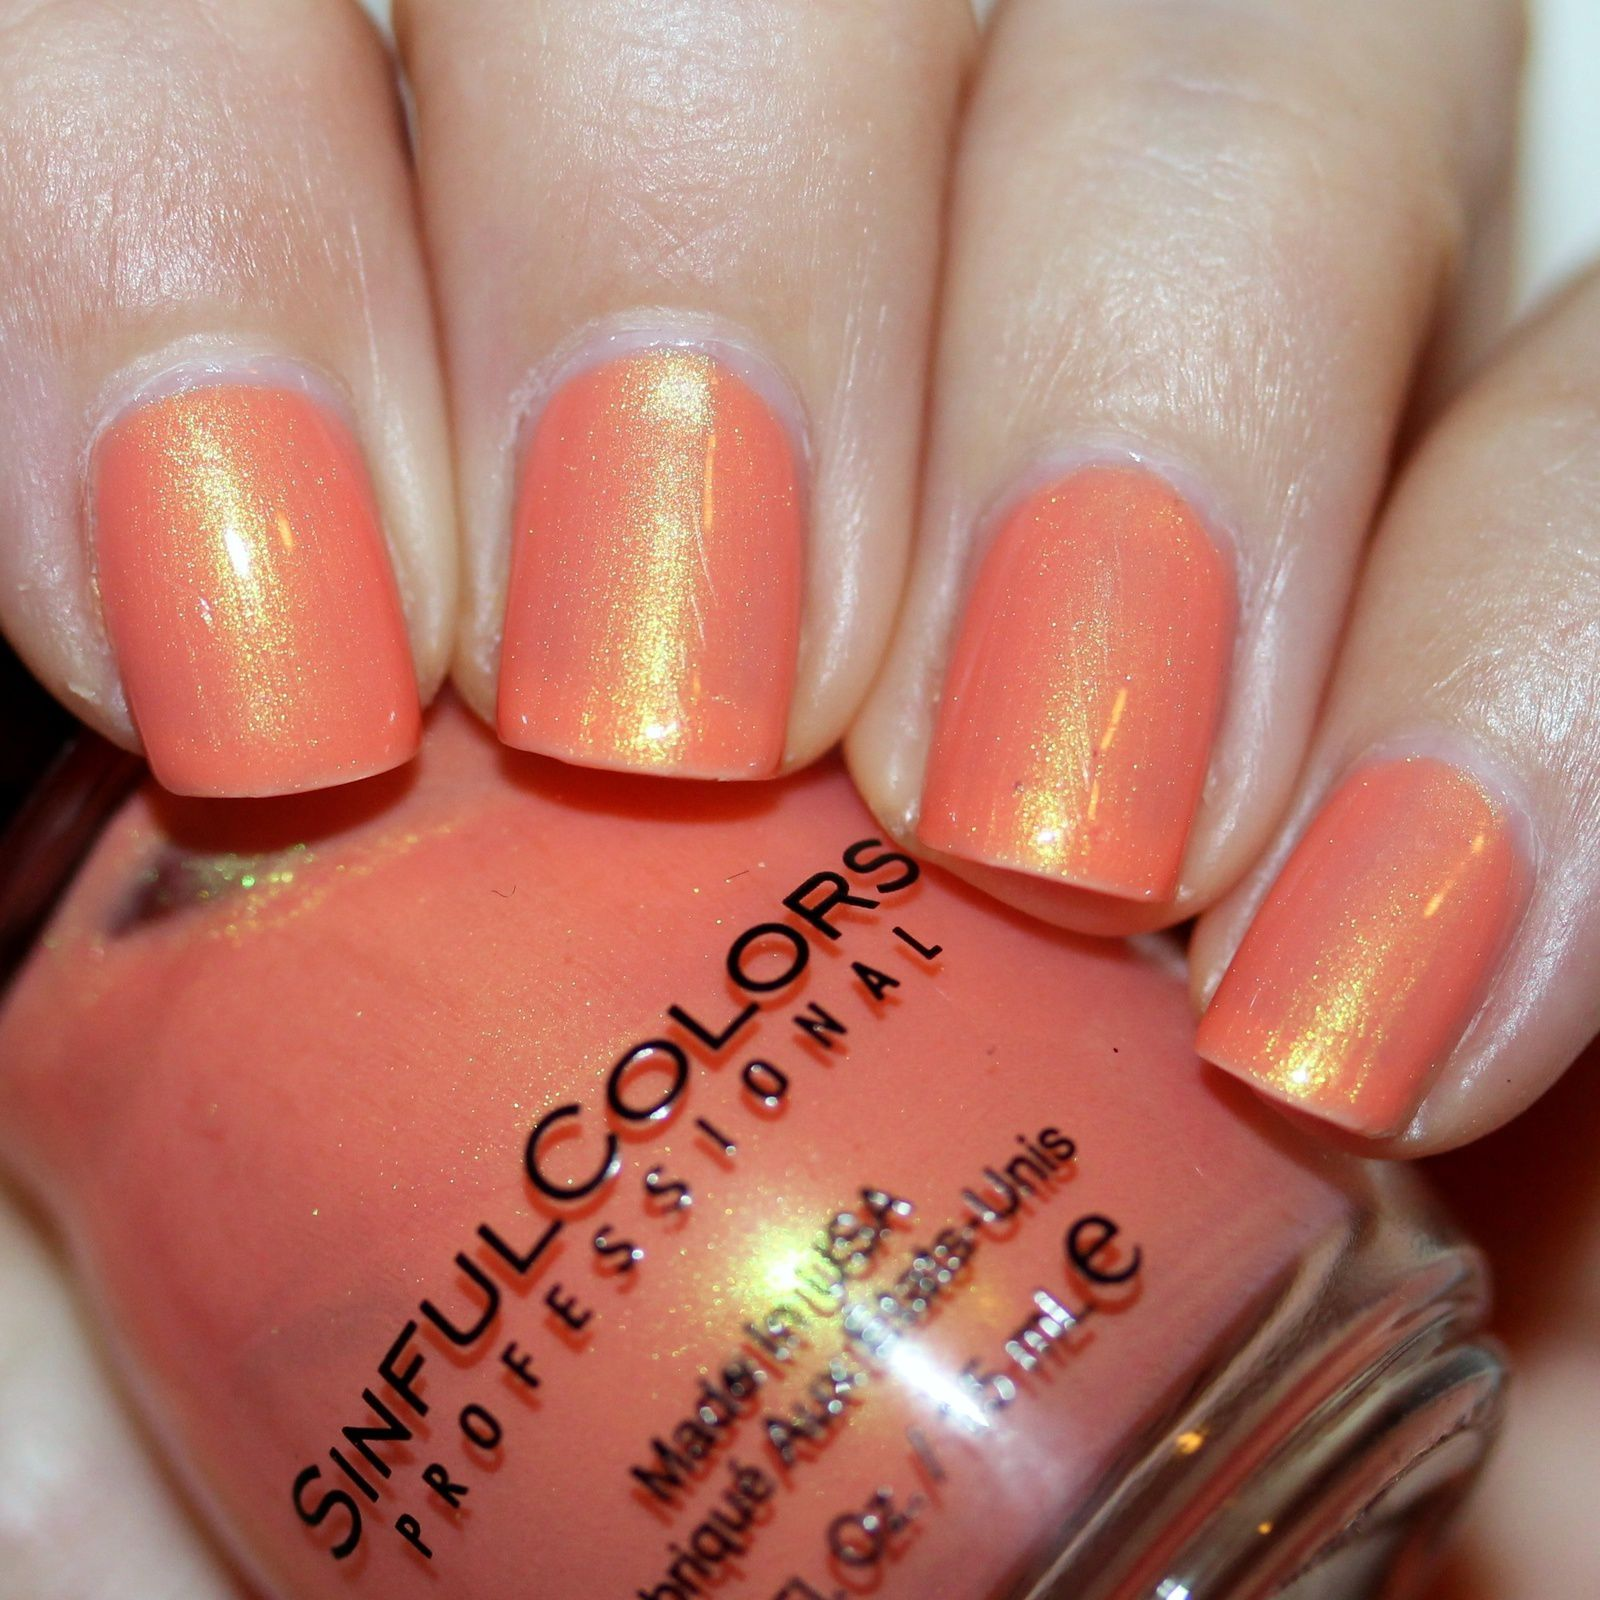 Sally Hansen Complete Care 4-in-1 Extra Moisturizing Nail Treatment / Sinful Colors Flash Back / Poshe Top Coat